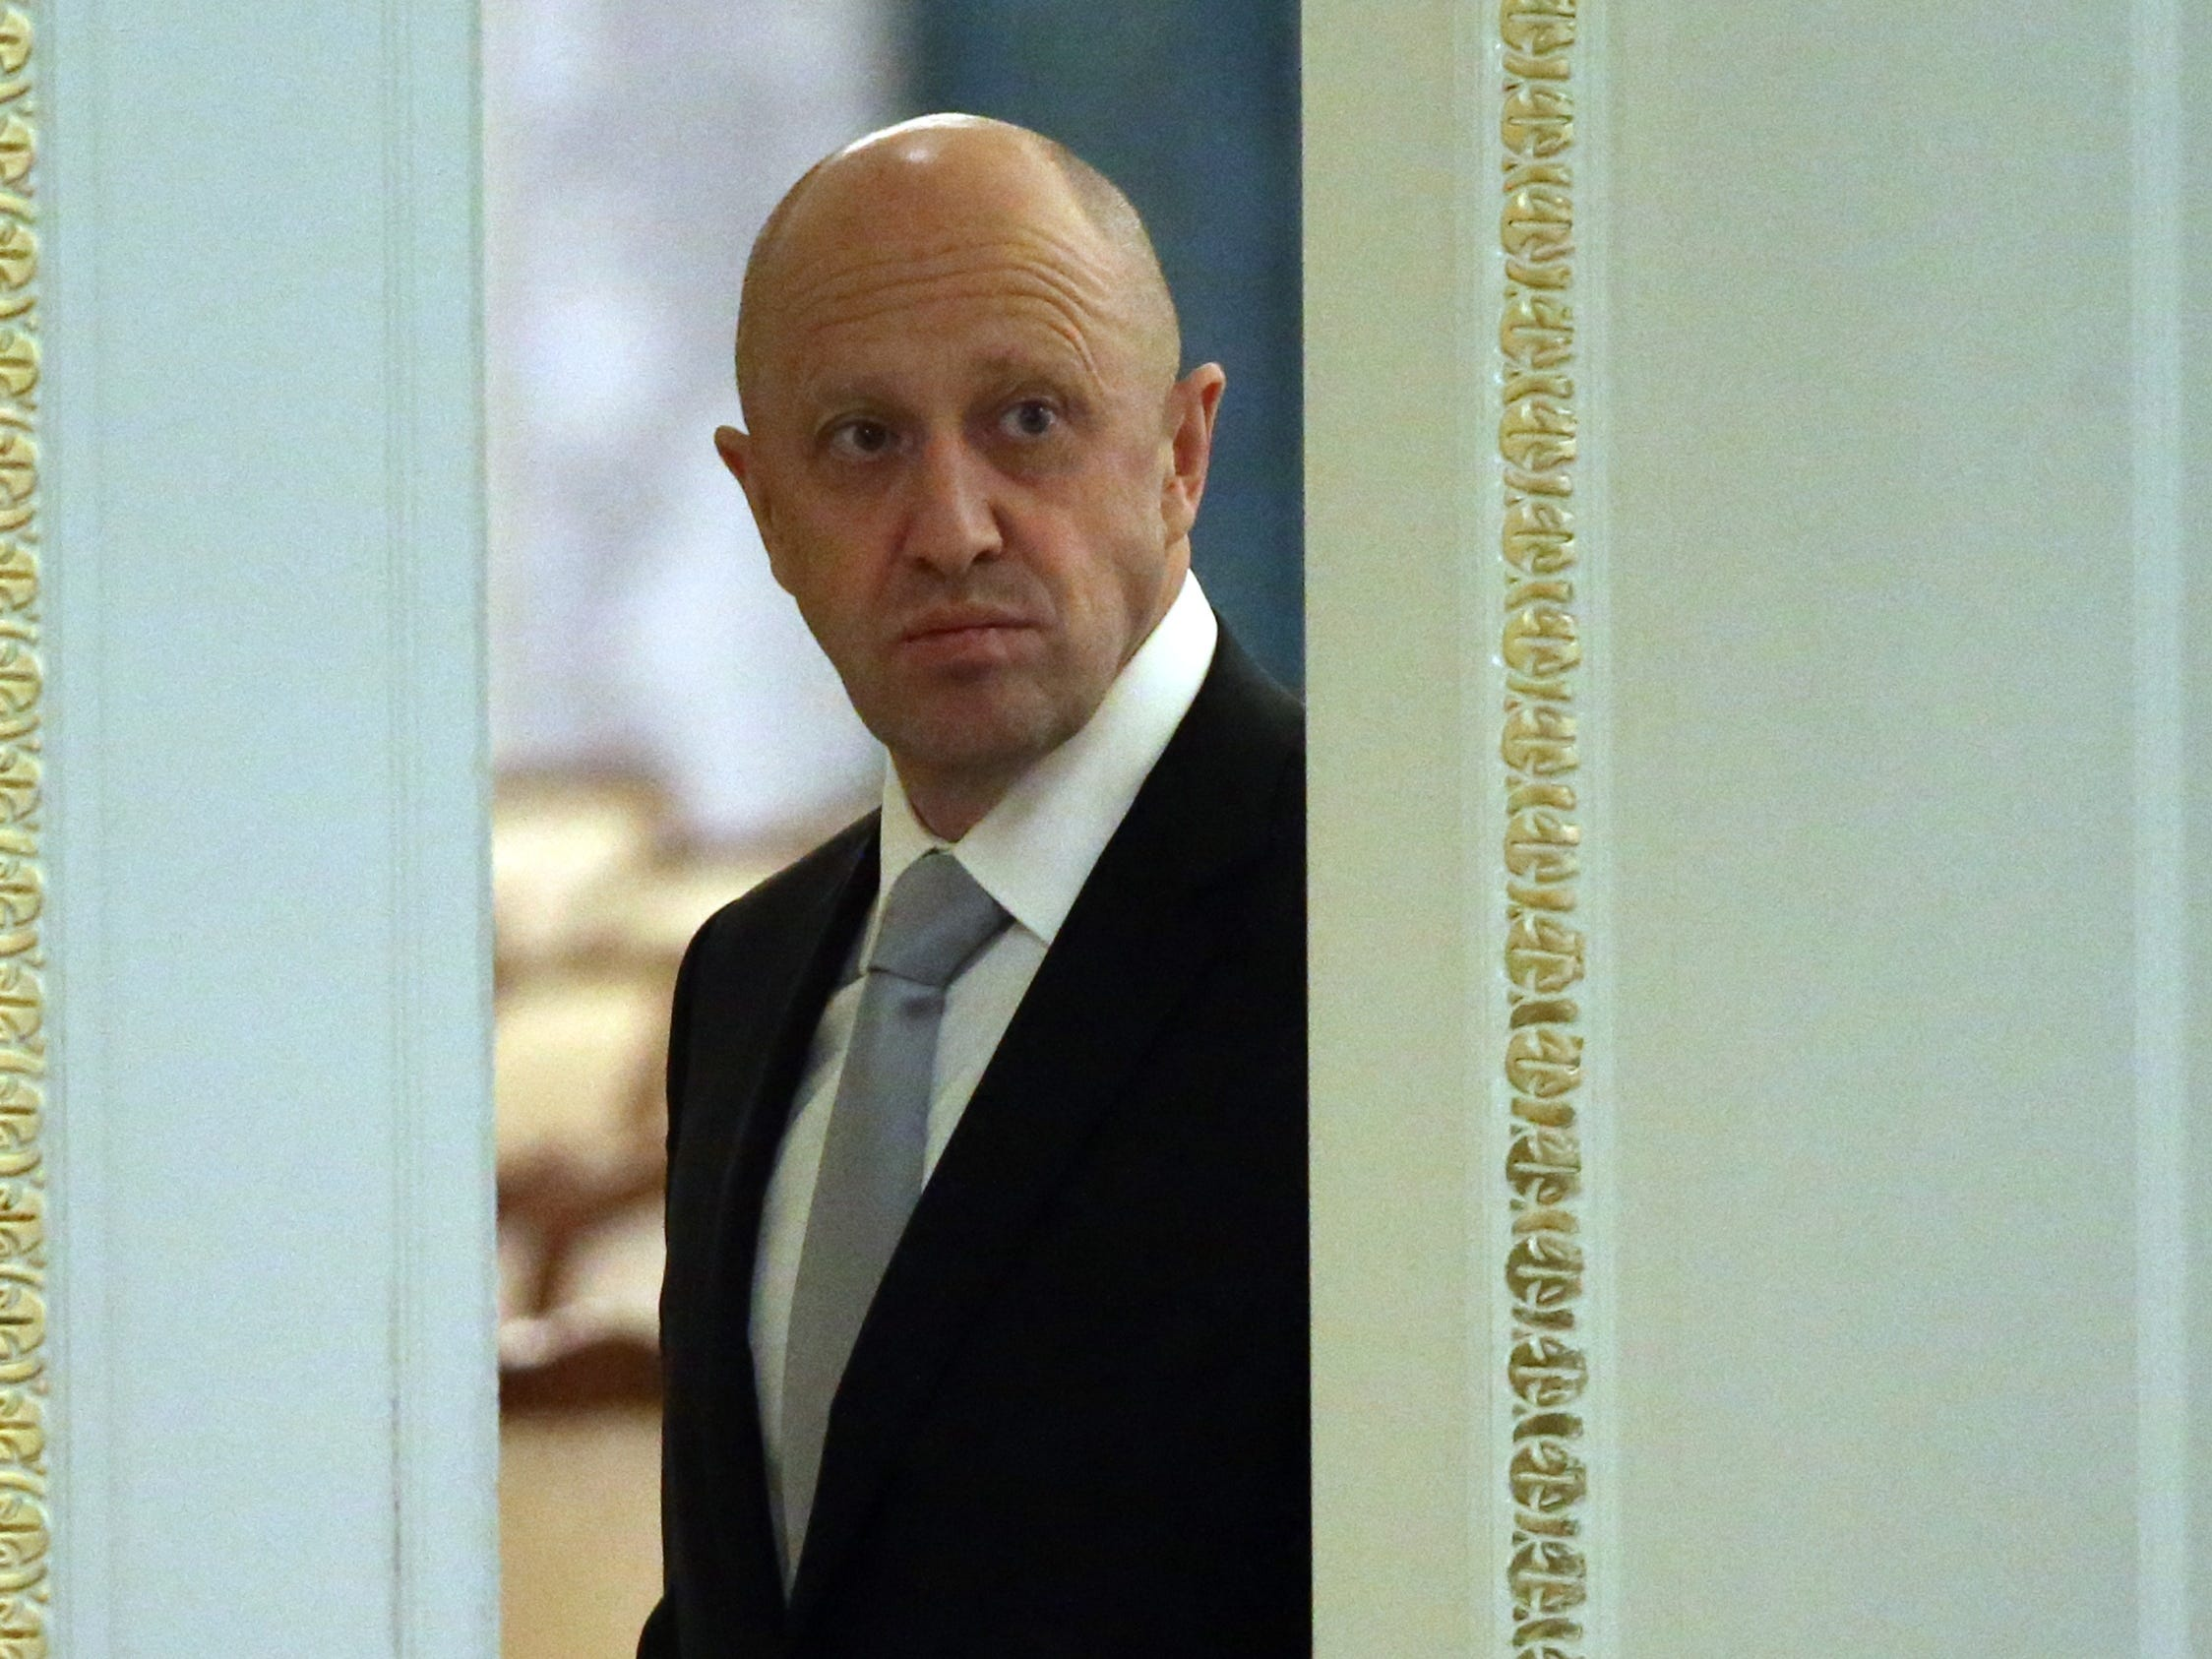 SAINT PETERSBURG, RUSSIA - AUGUST 9:  (RUSSIA OUT)  Russian billionaire and businessman Yevgeniy Prigozhin attends Russian-Turkish talks in Konstantin Palace in Strenla on August,9, 2016 in  Saint Petersburg, Russia. President of Turkey is having a one-day visit to Putin's hometown. (Photo by Mikhail Svetlov/Getty Images) ORG XMIT: 660445815 [Via MerlinFTP Drop]